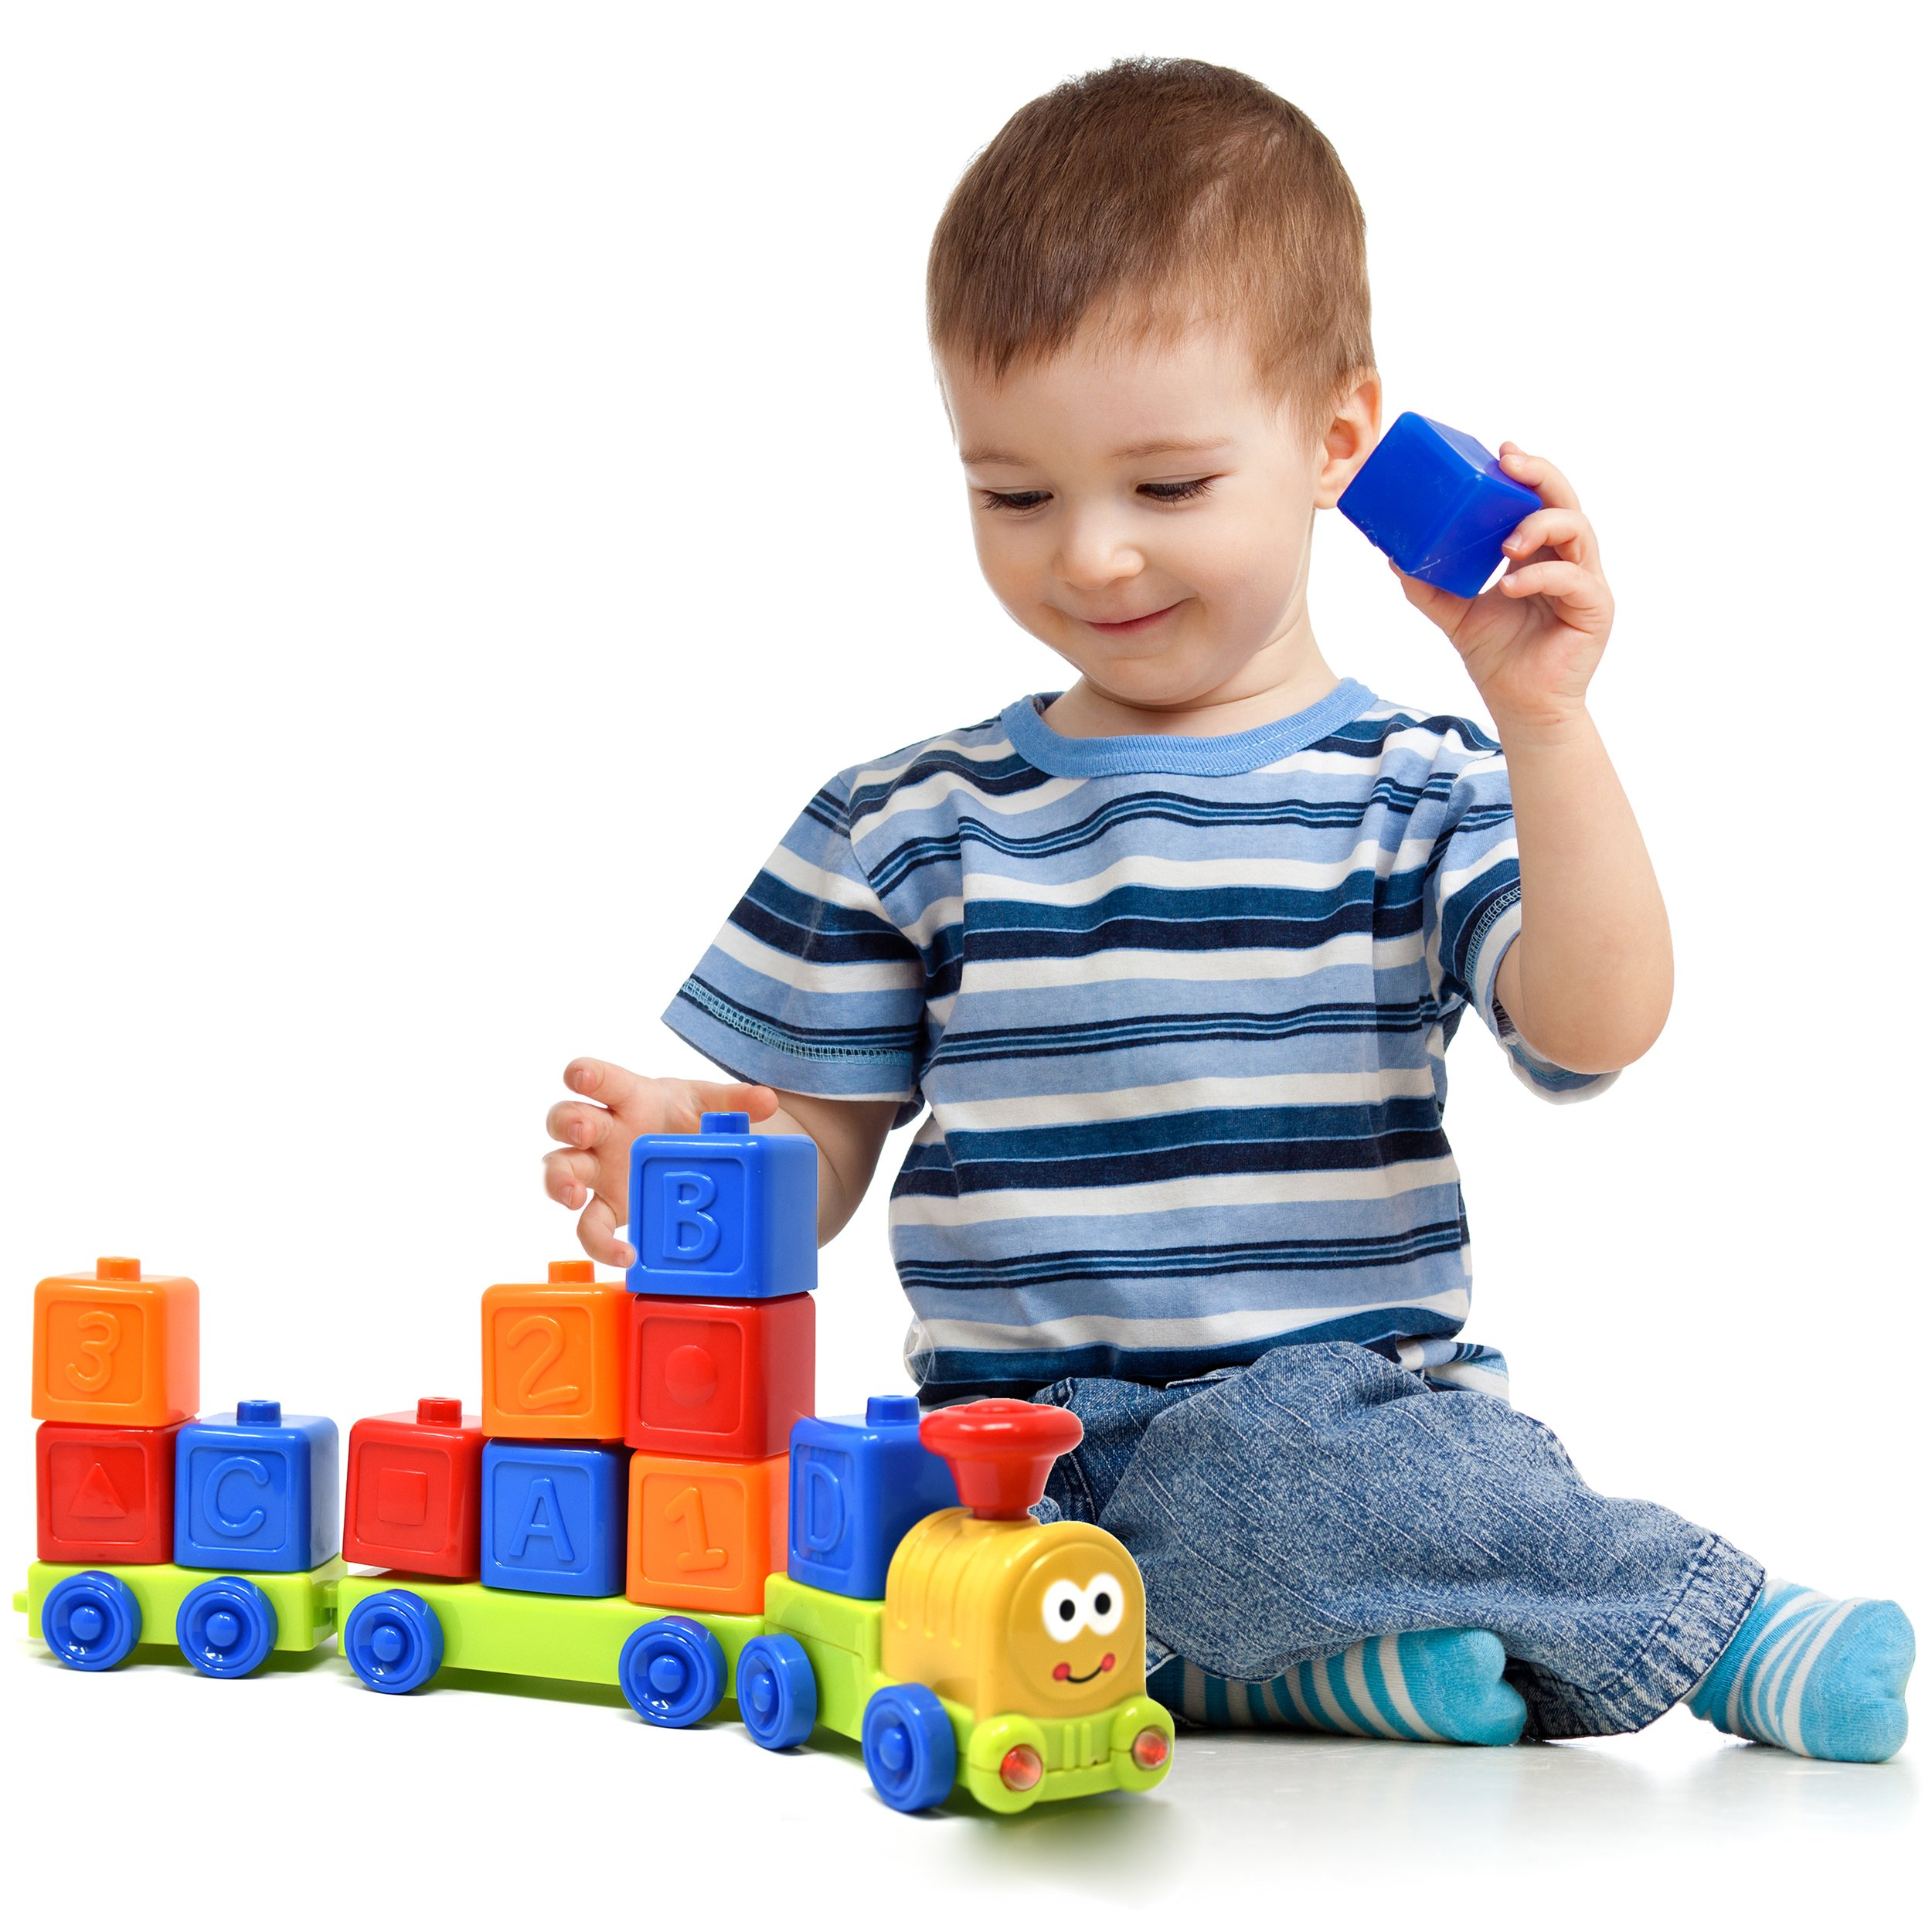 My First Train Set – Sound and Light Musical ABC, Number and Stack and Sort Train for Baby, Toddler and Kids, the Best Early Explorer Education Toy for Children